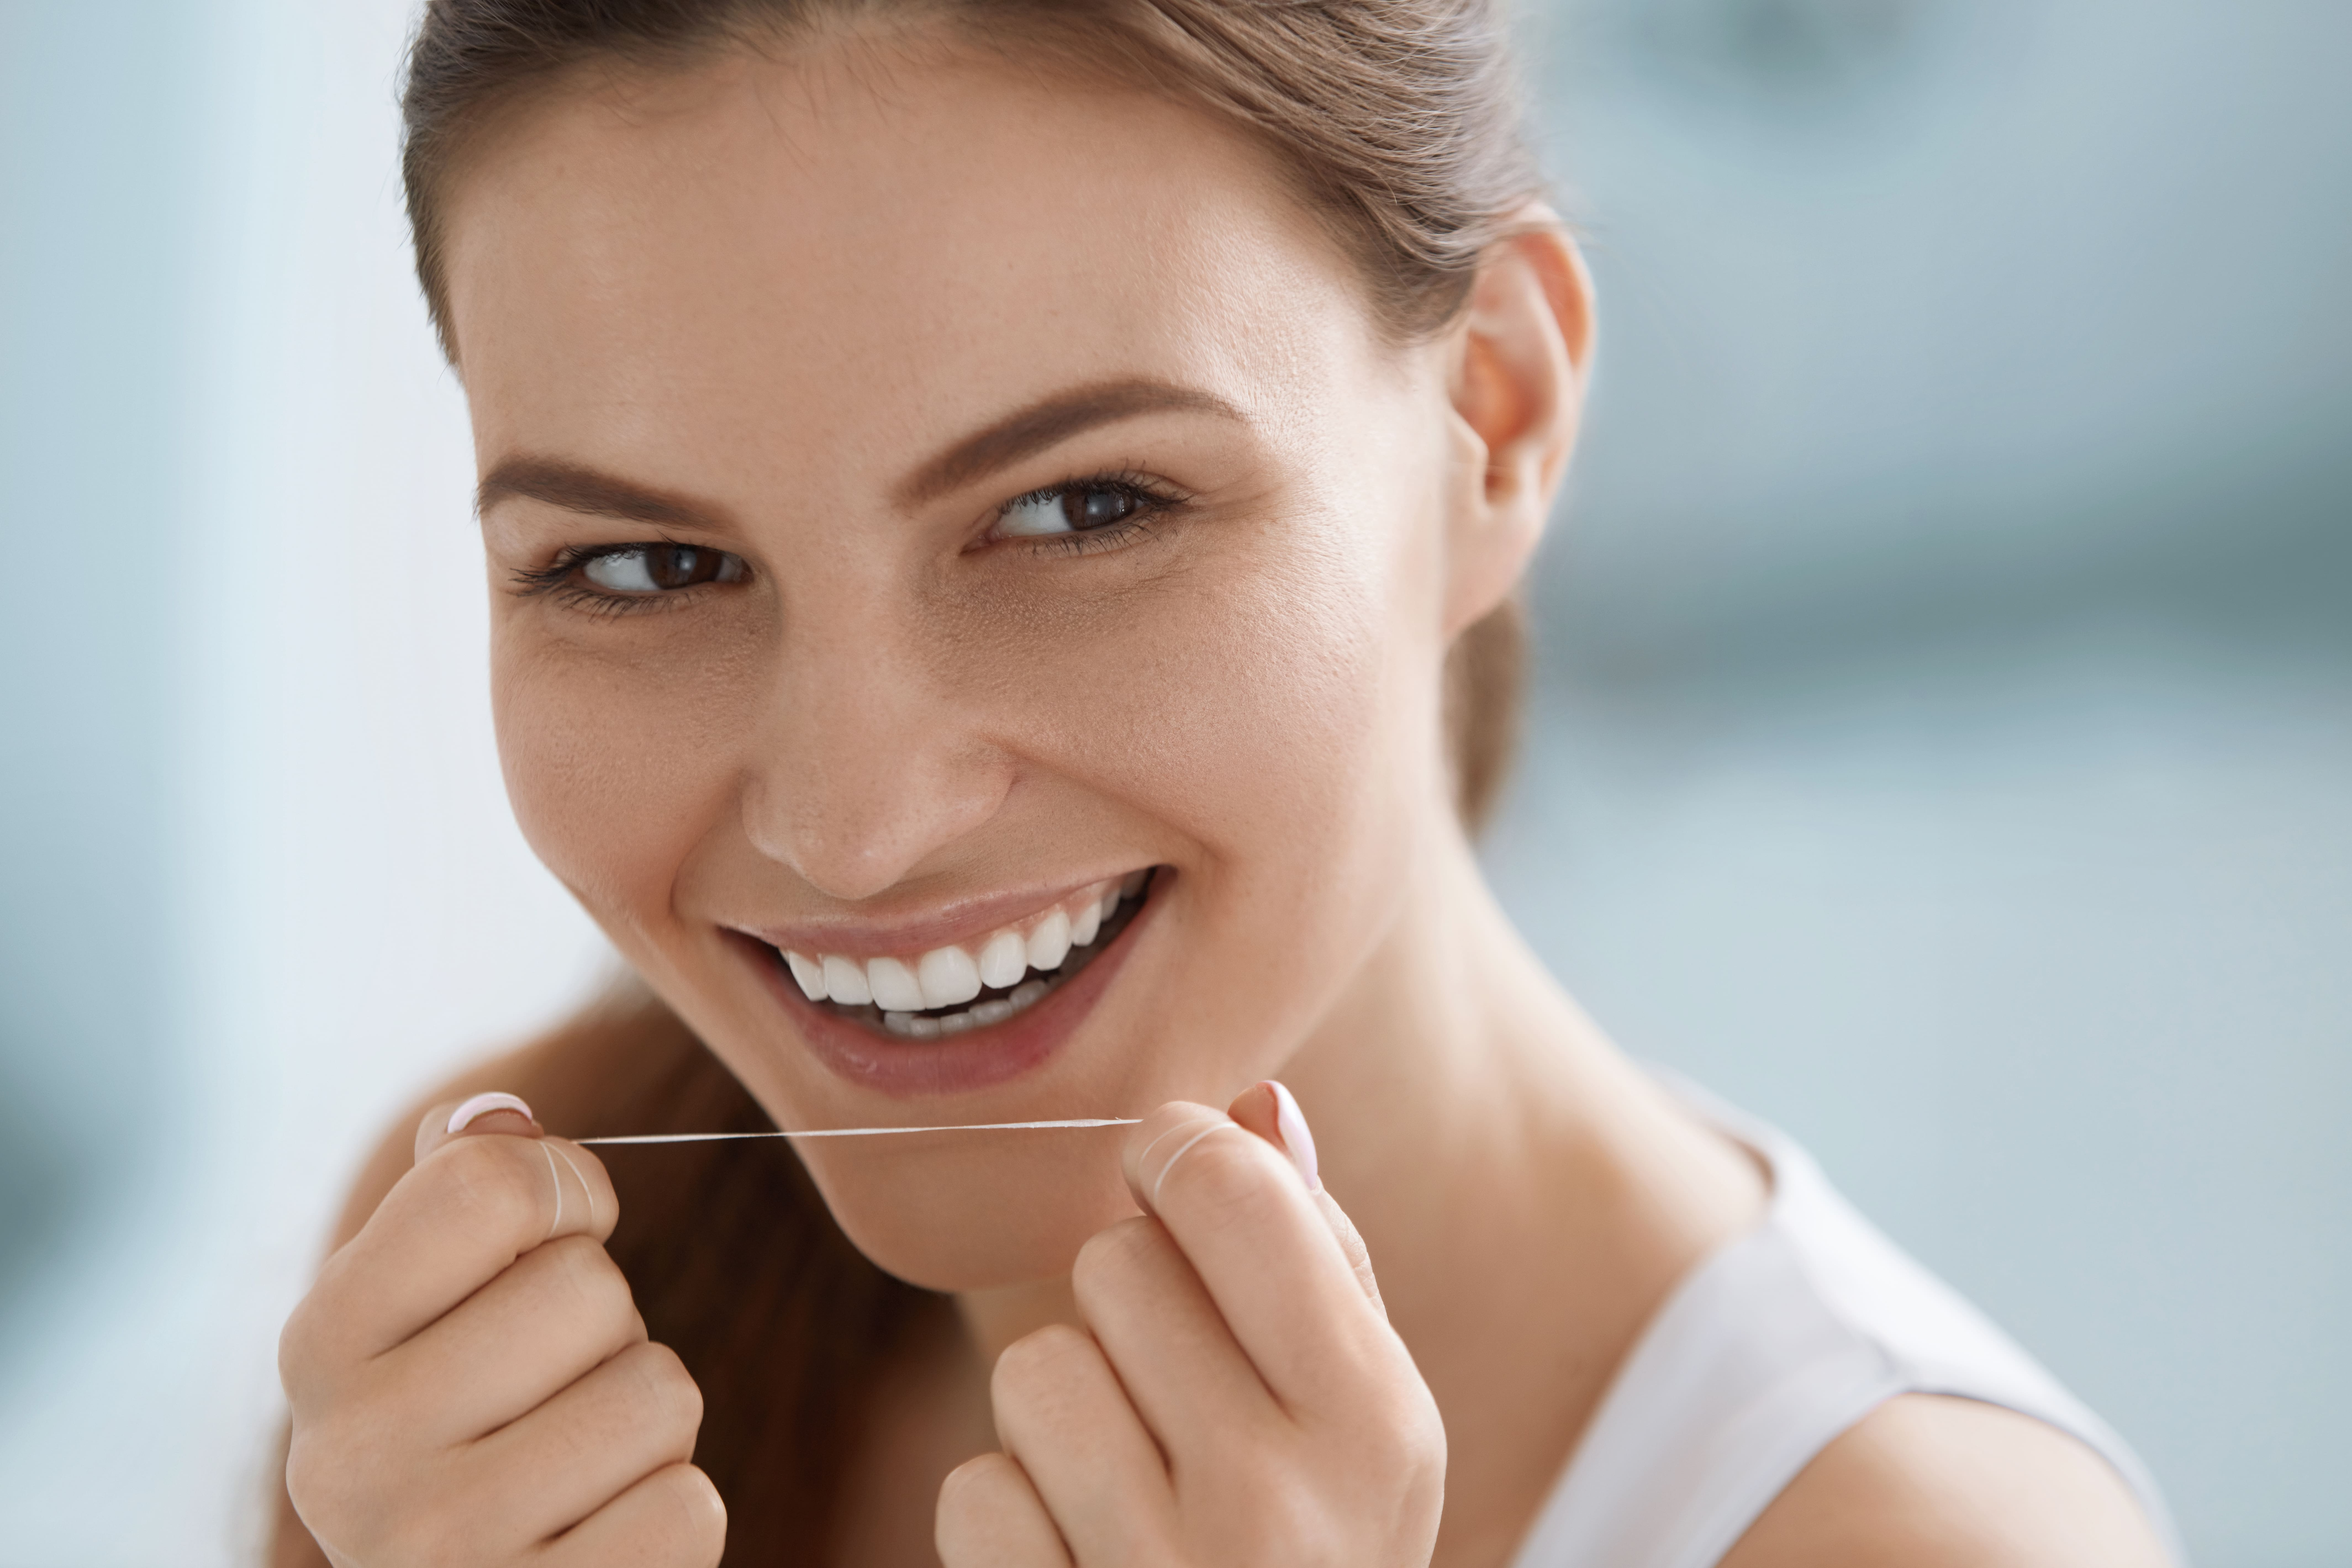 A smiling woman holding a string of floss, about to floss her teeth